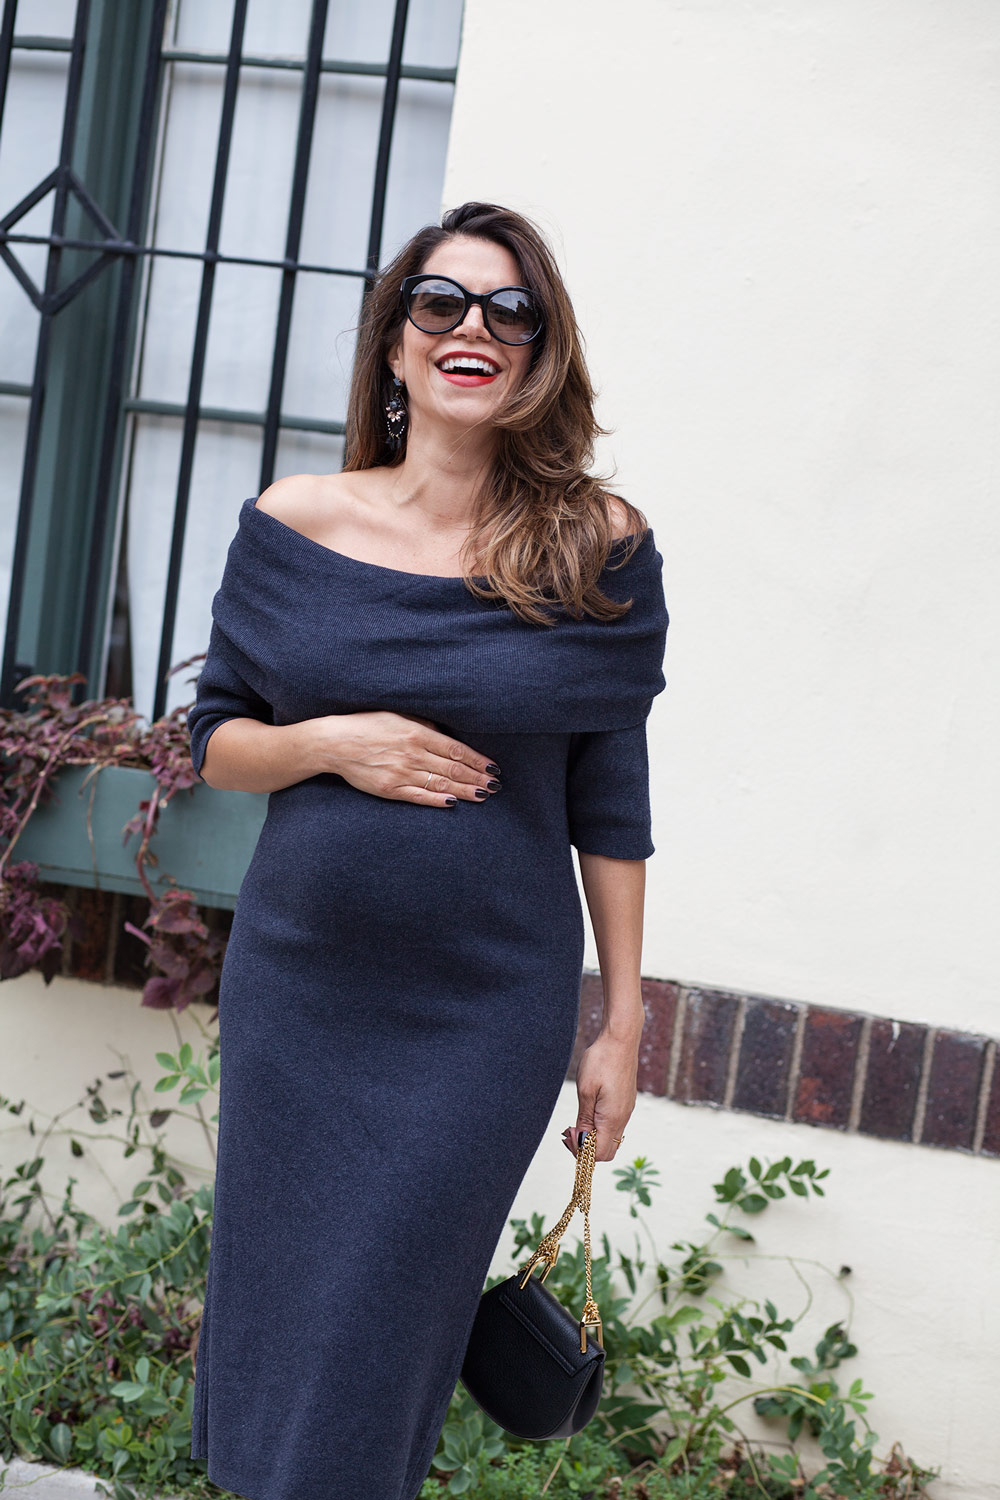 nordstrom-grey-off-the-shoulder-sweater-dress-workwear-chloe-dress-prada-cateye-sunglasses-fall-style-bump-style-maternity-looks-for-fall-corporate-catwalk-6